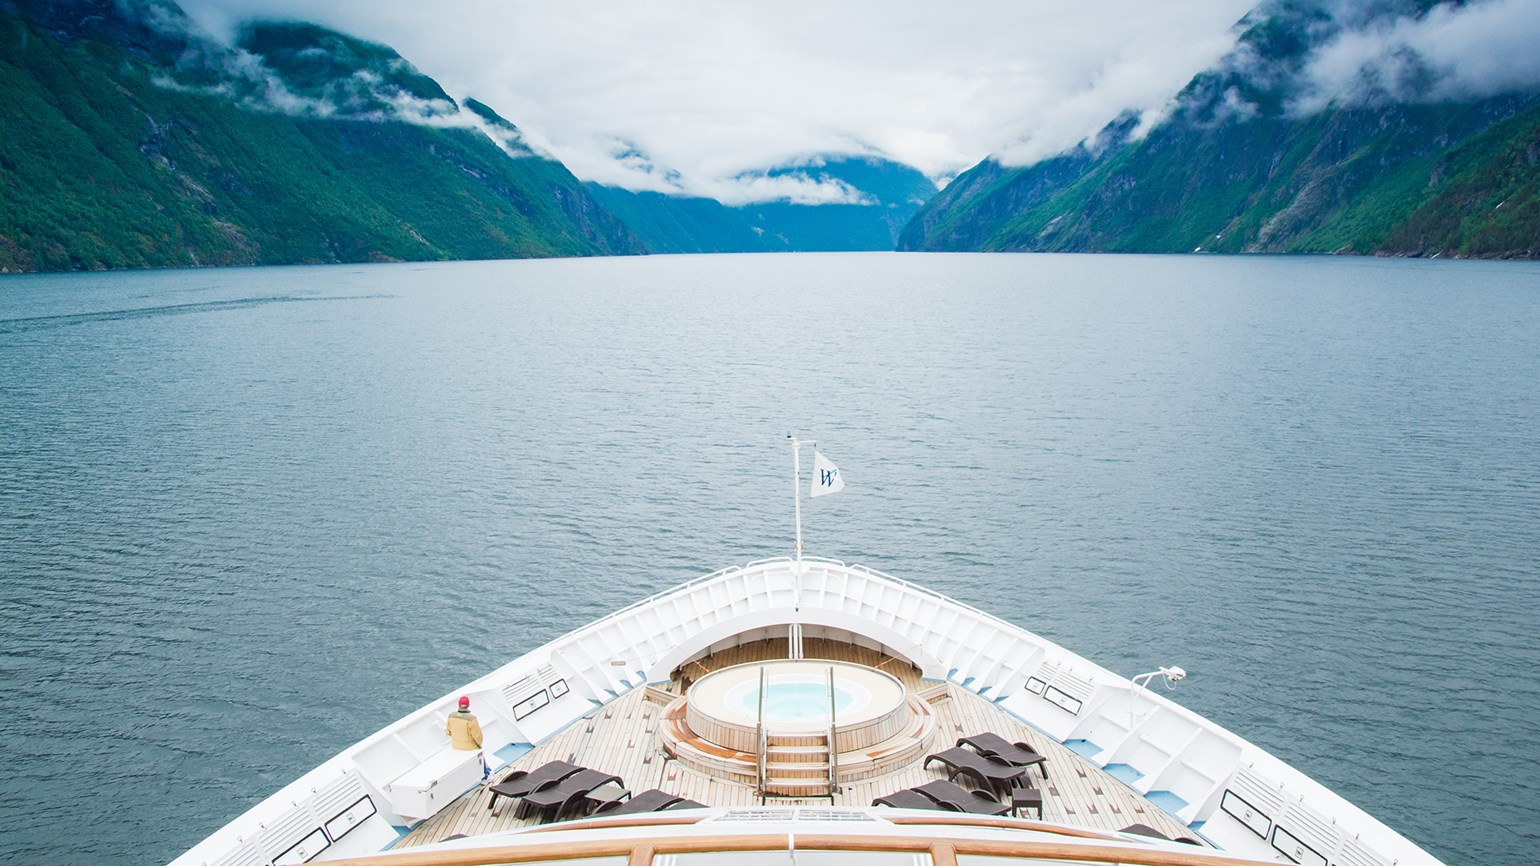 Windstar doing cruise-tours in Alaska